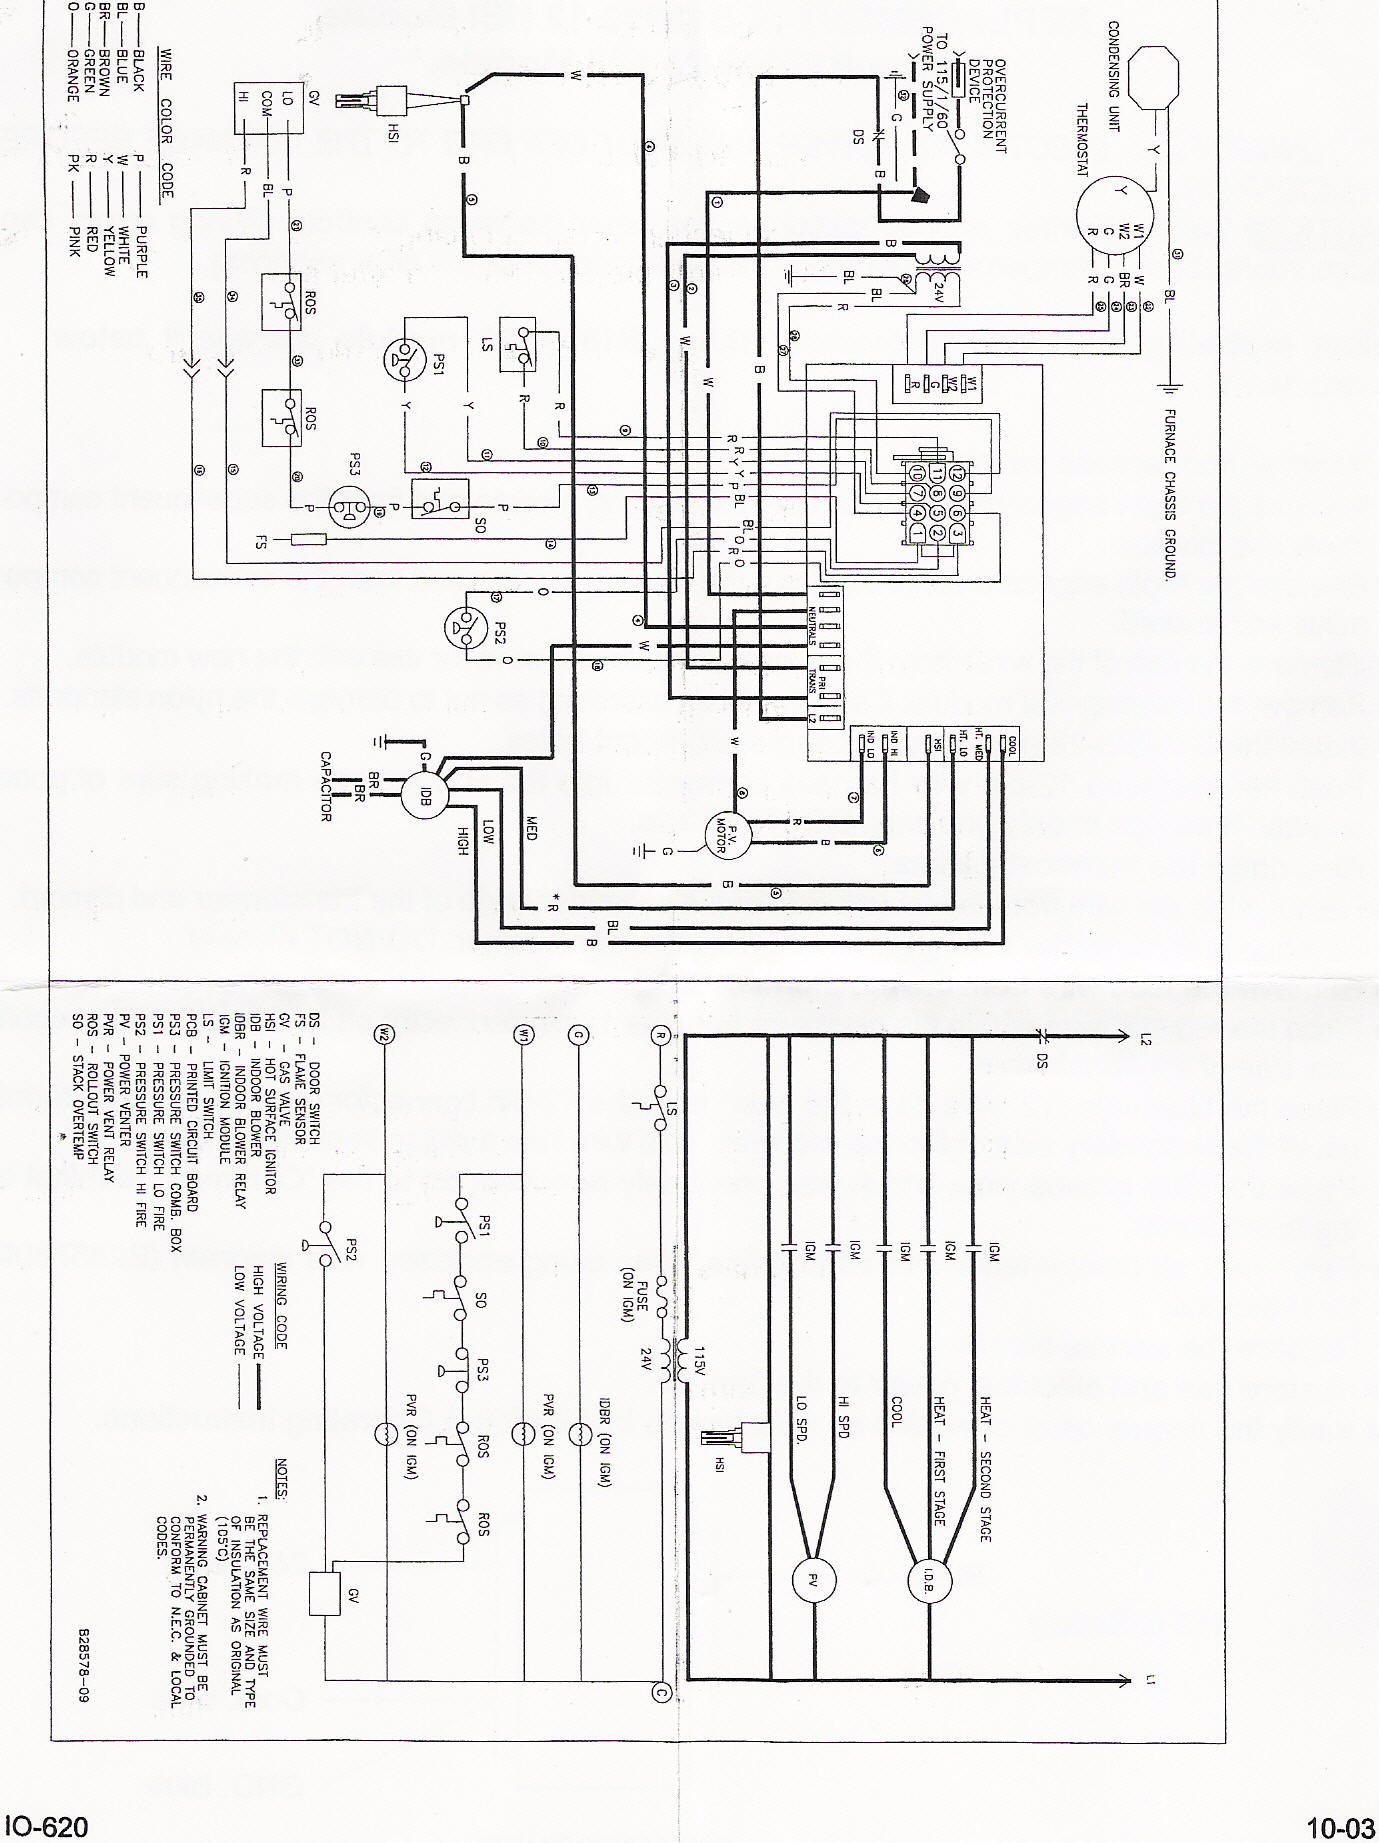 Interav Alternator Wiring Diagram